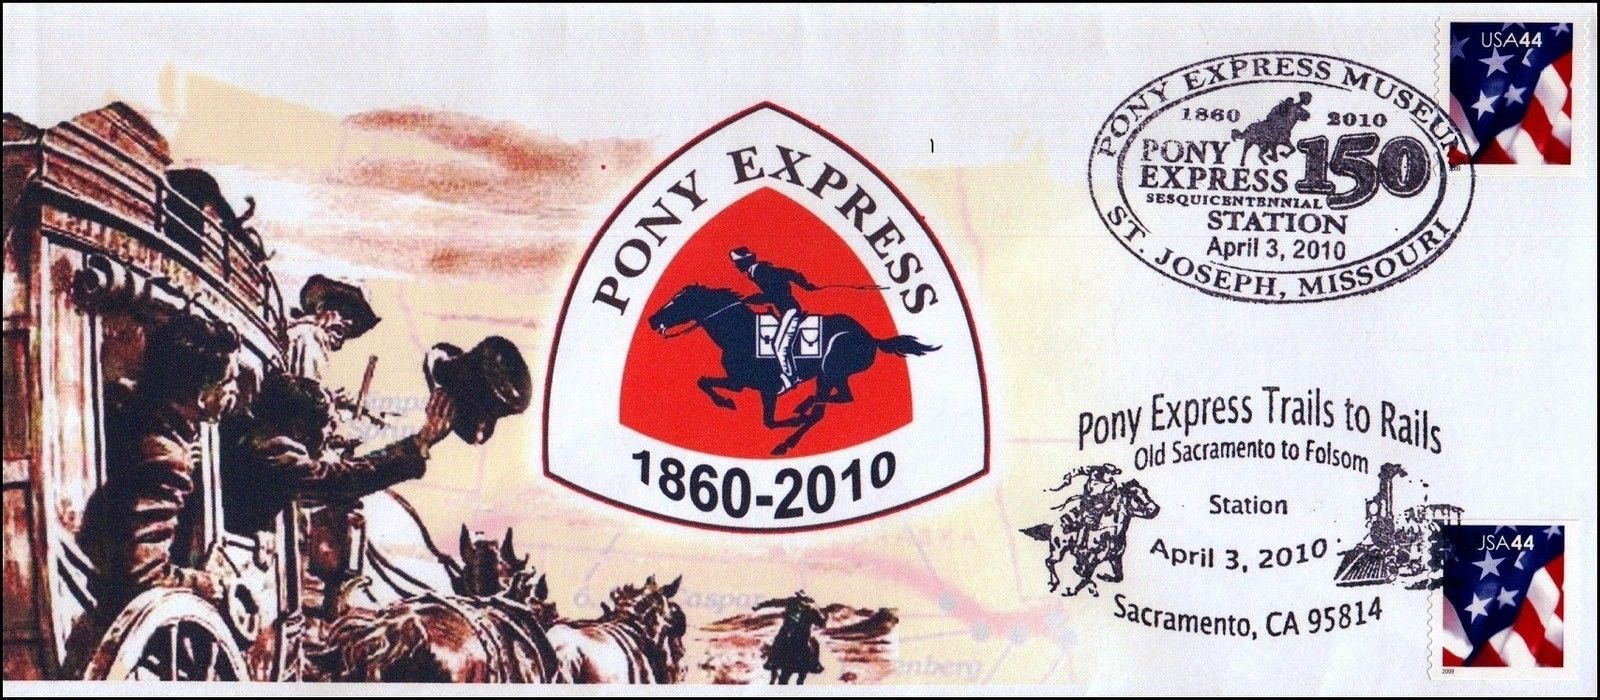 Philatelic cover marking the 150th anniversary of the Pony Express with St. Joseph, Missouri, and Sacramento, California, pictorial cancellations.